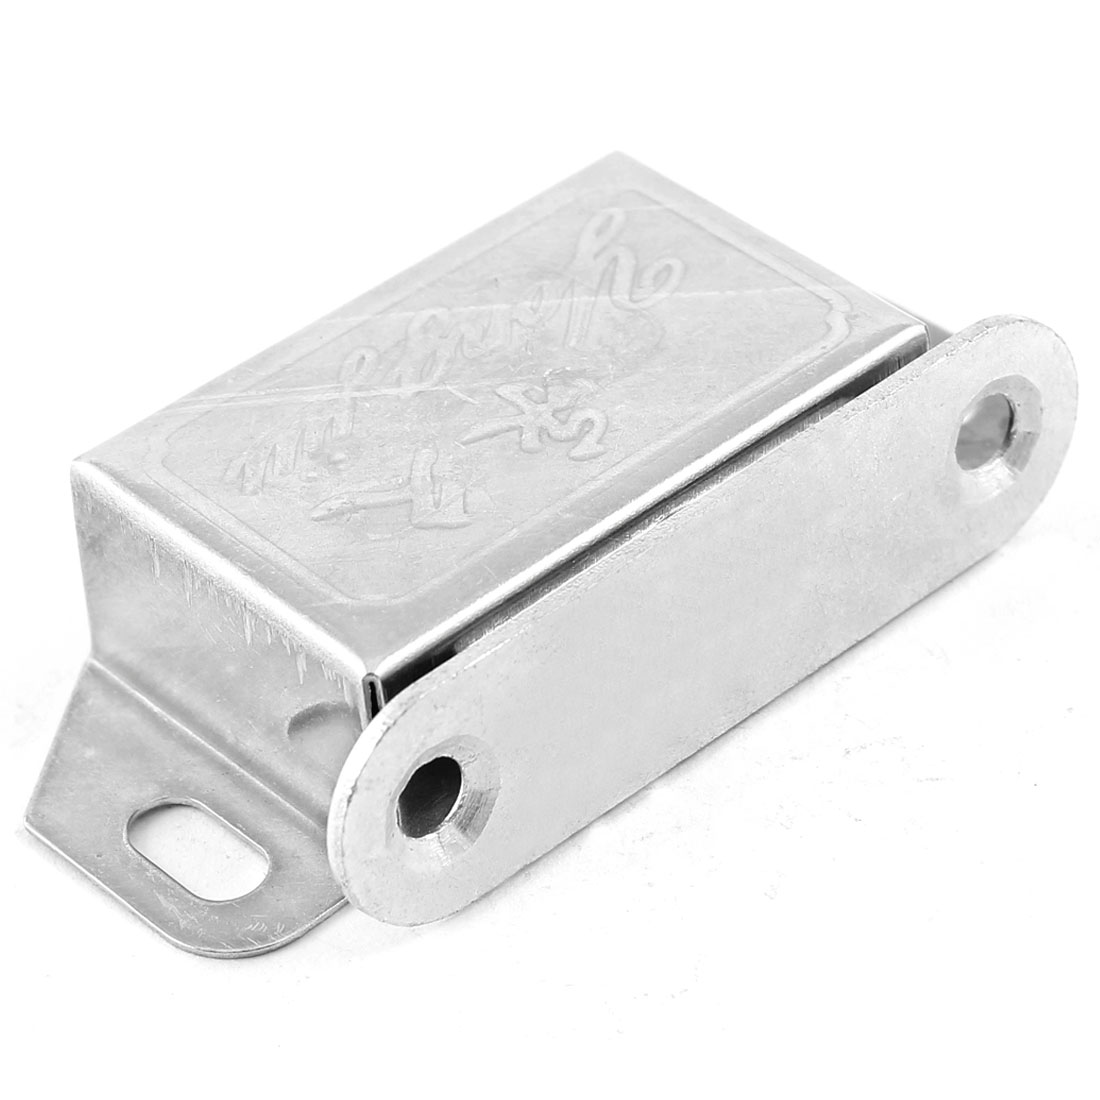 55mm Silver Tone Stainless Steel Cabinet Door Magnetic Catch Latch